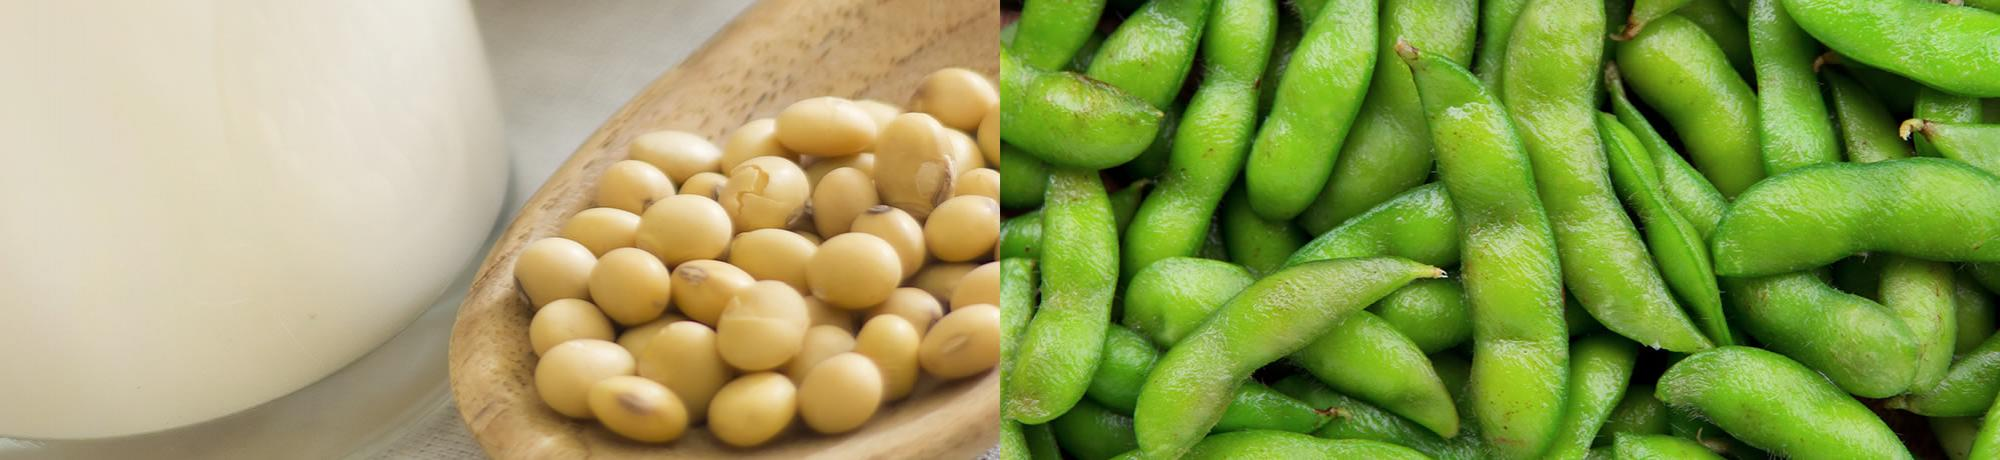 Soy milk and soy beans (edamame)